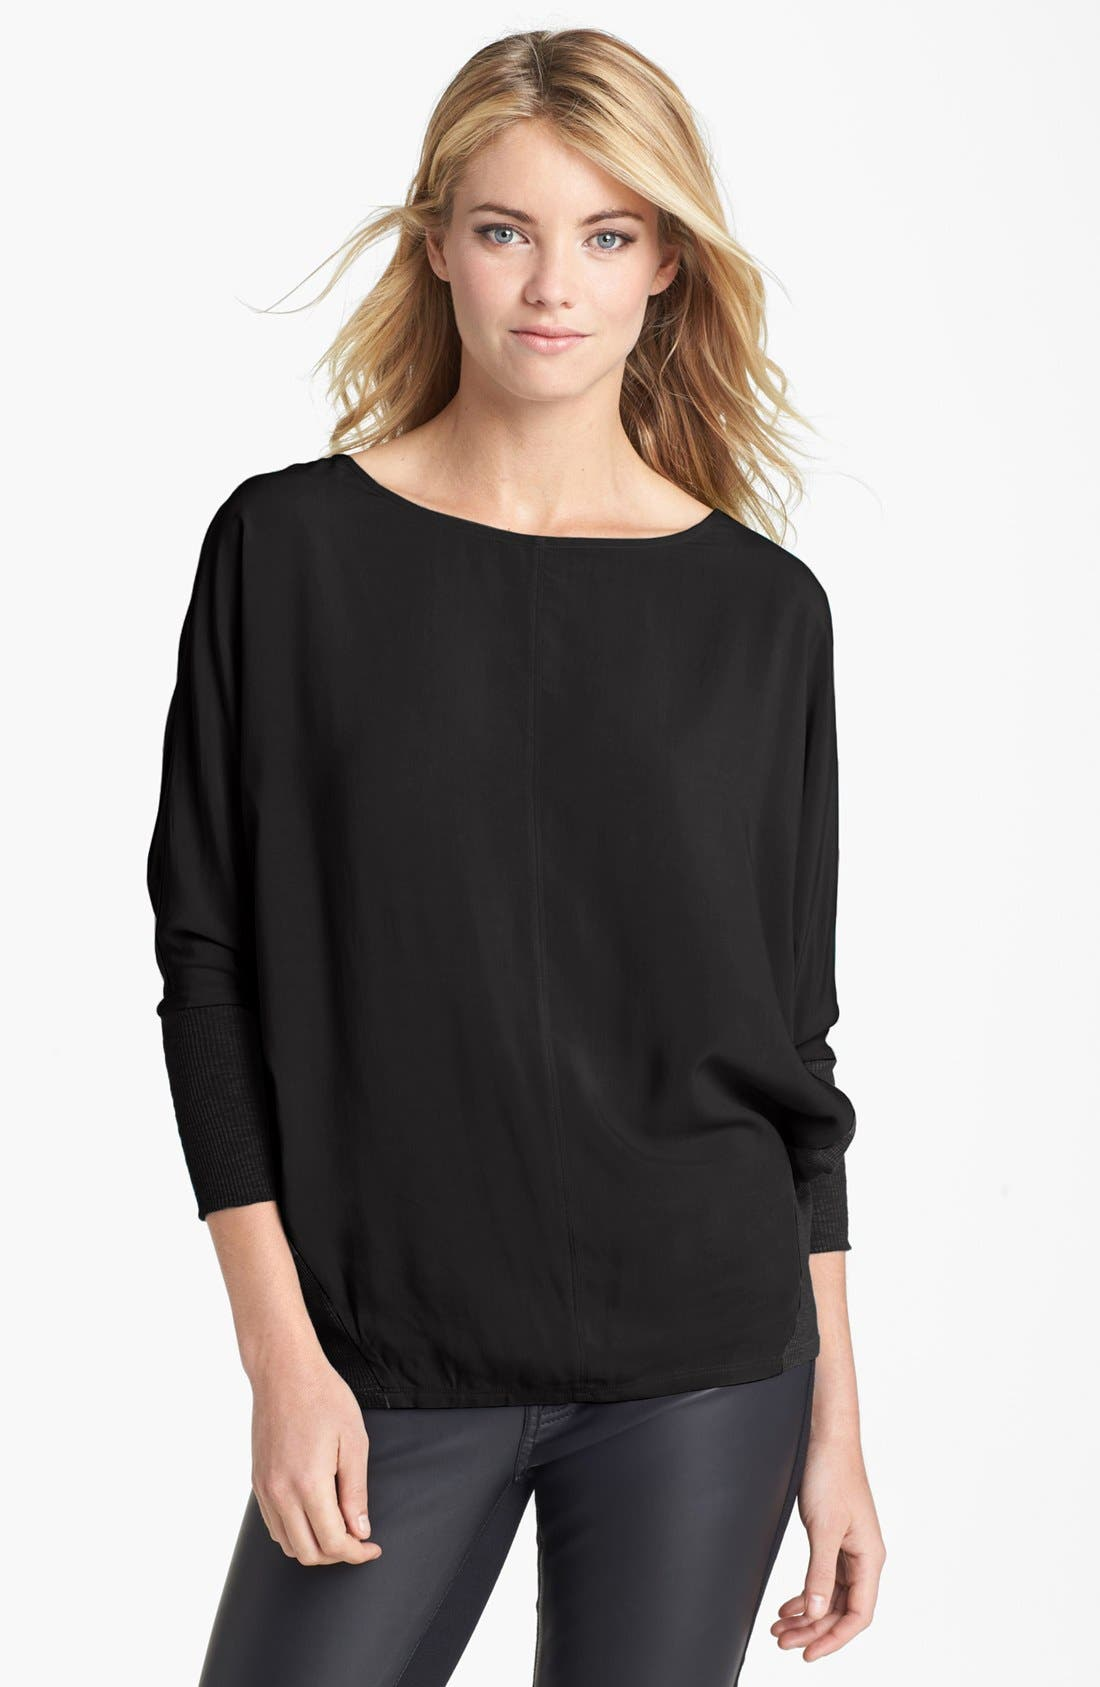 Alternate Image 1 Selected - Two by Vince Camuto Dolman Sleeve Mixed Media Tee